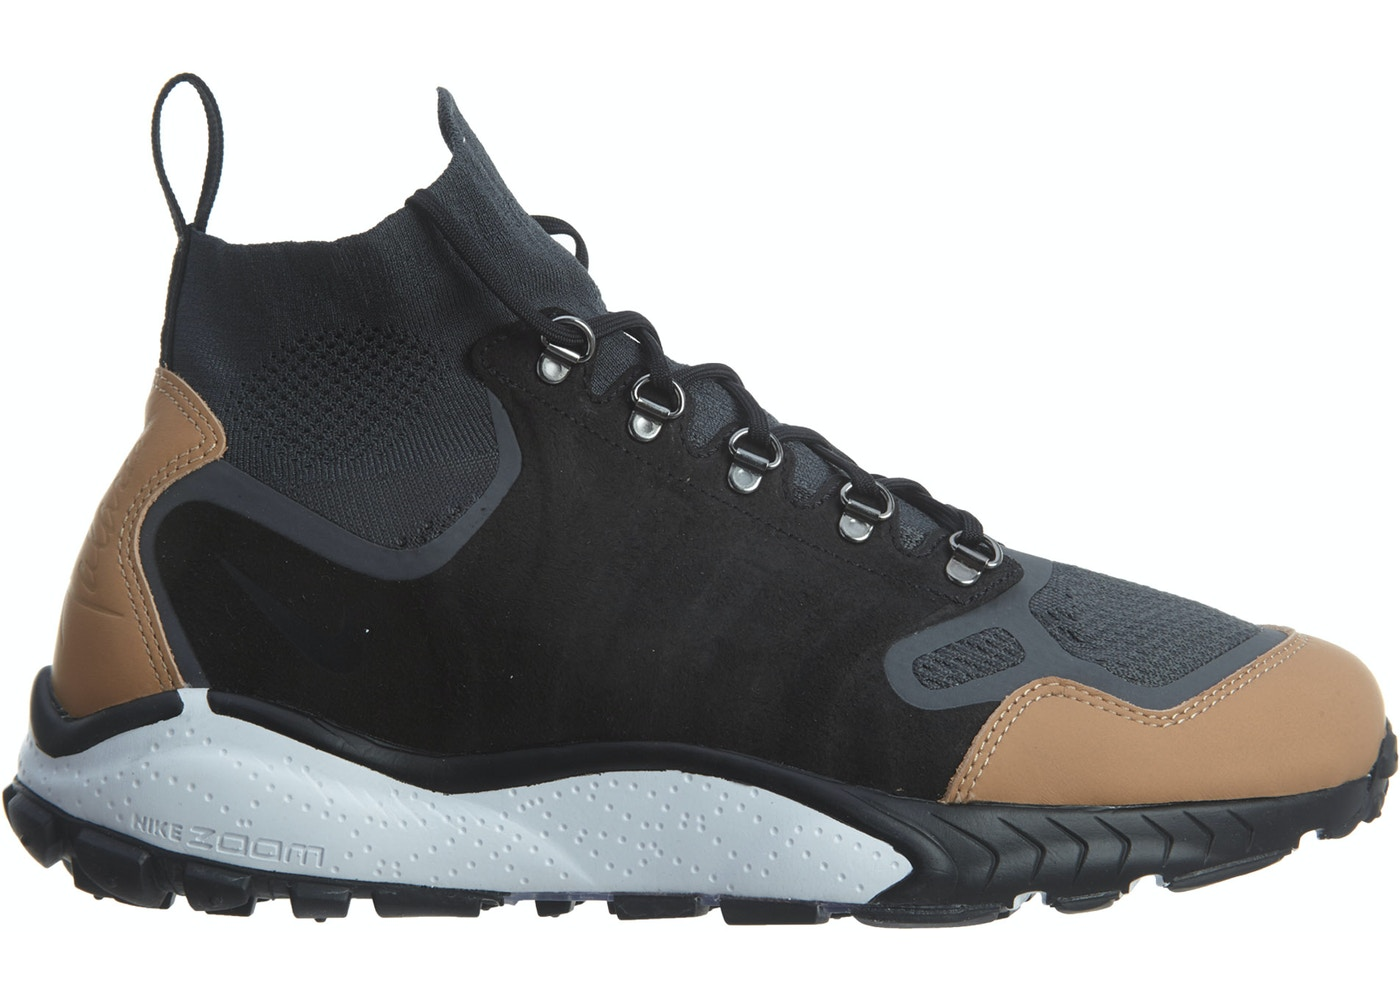 e86d713dd8a5 Air Zoom Talaria Mid Fk Prm Anthracite Black-Vachetta Tan - 875784-001